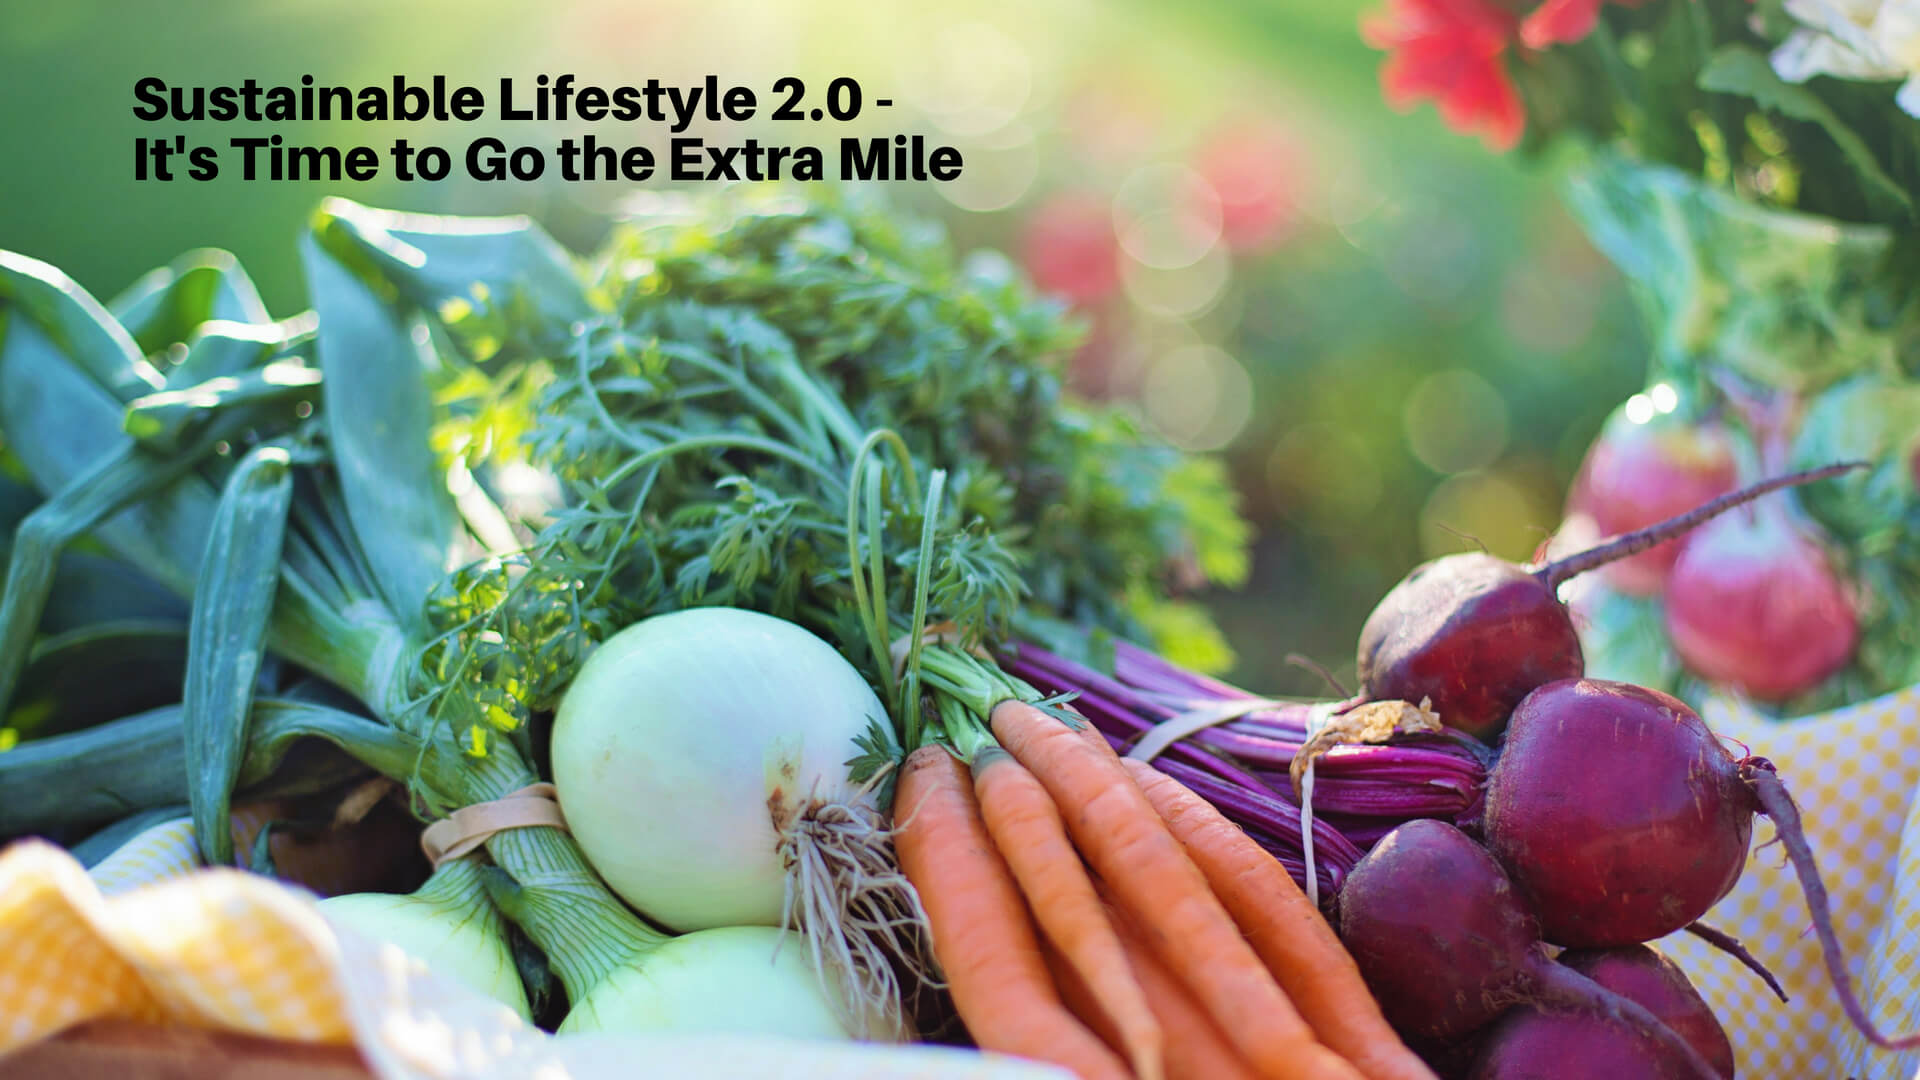 Sustainable Lifestyle 2.0 – It's Time to Go the Extra Mile